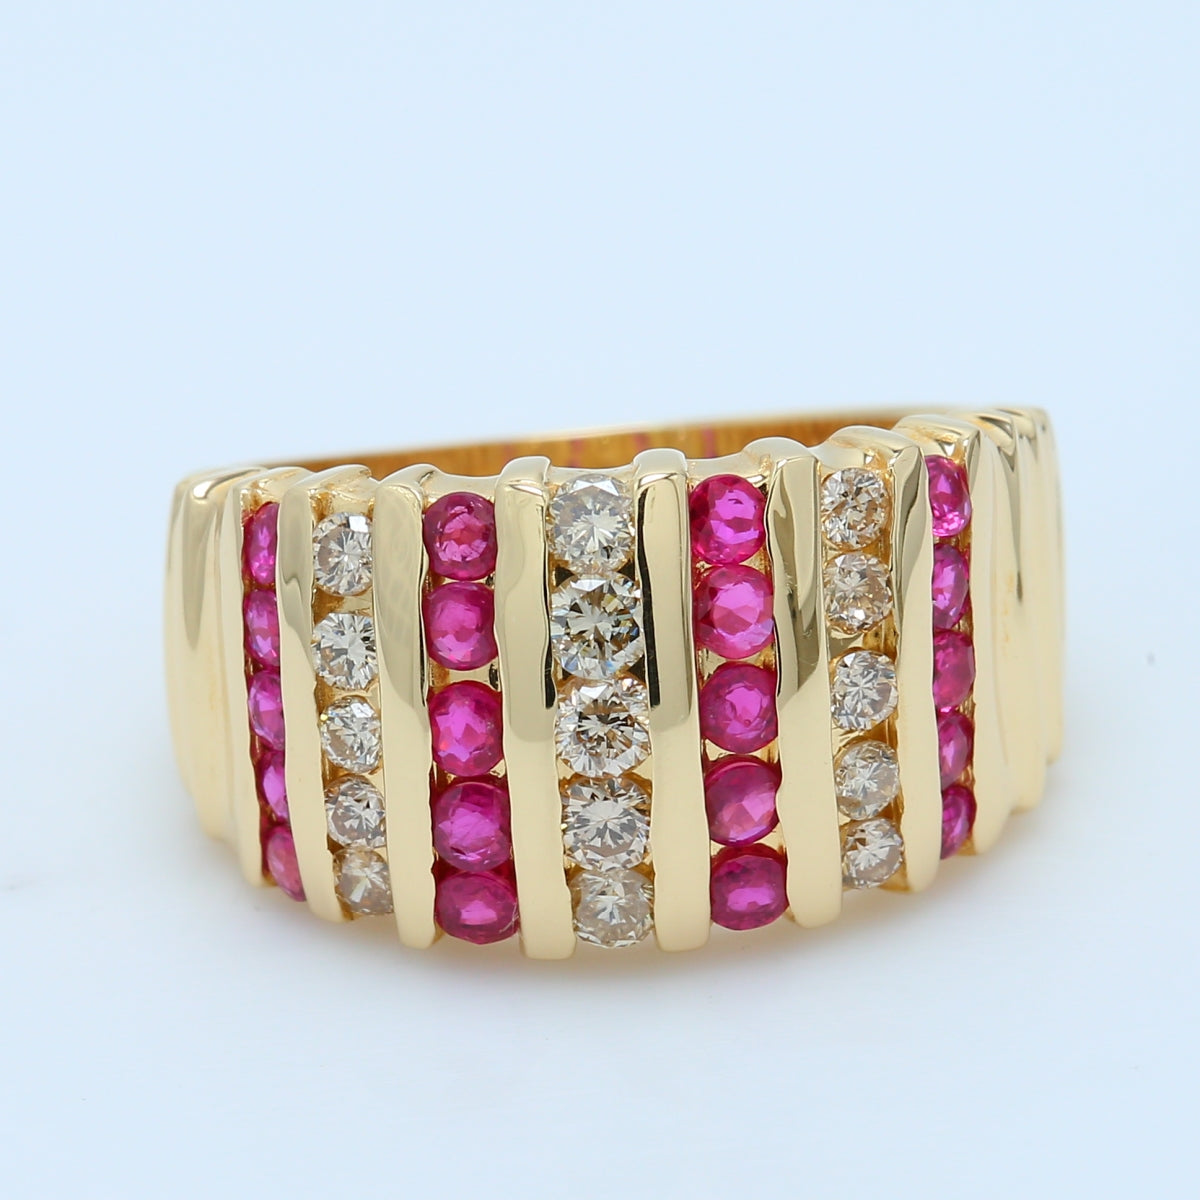 Stunning Ruby and Diamond Band in 14k Yellow Gold